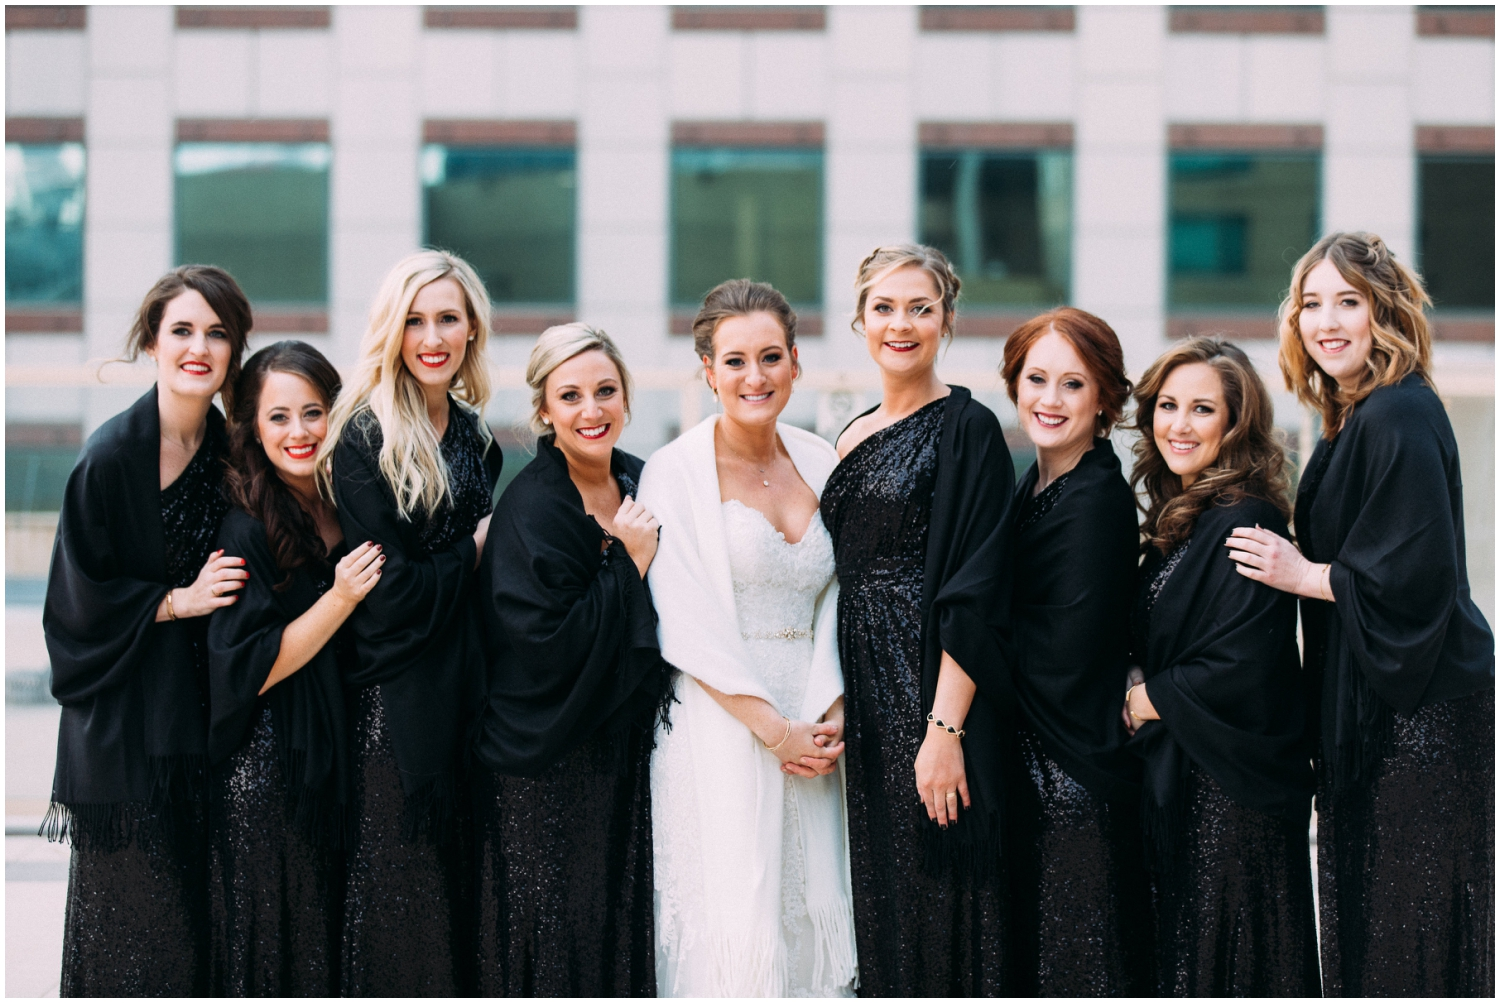 Bride and the bridesmaids ready for the wedding